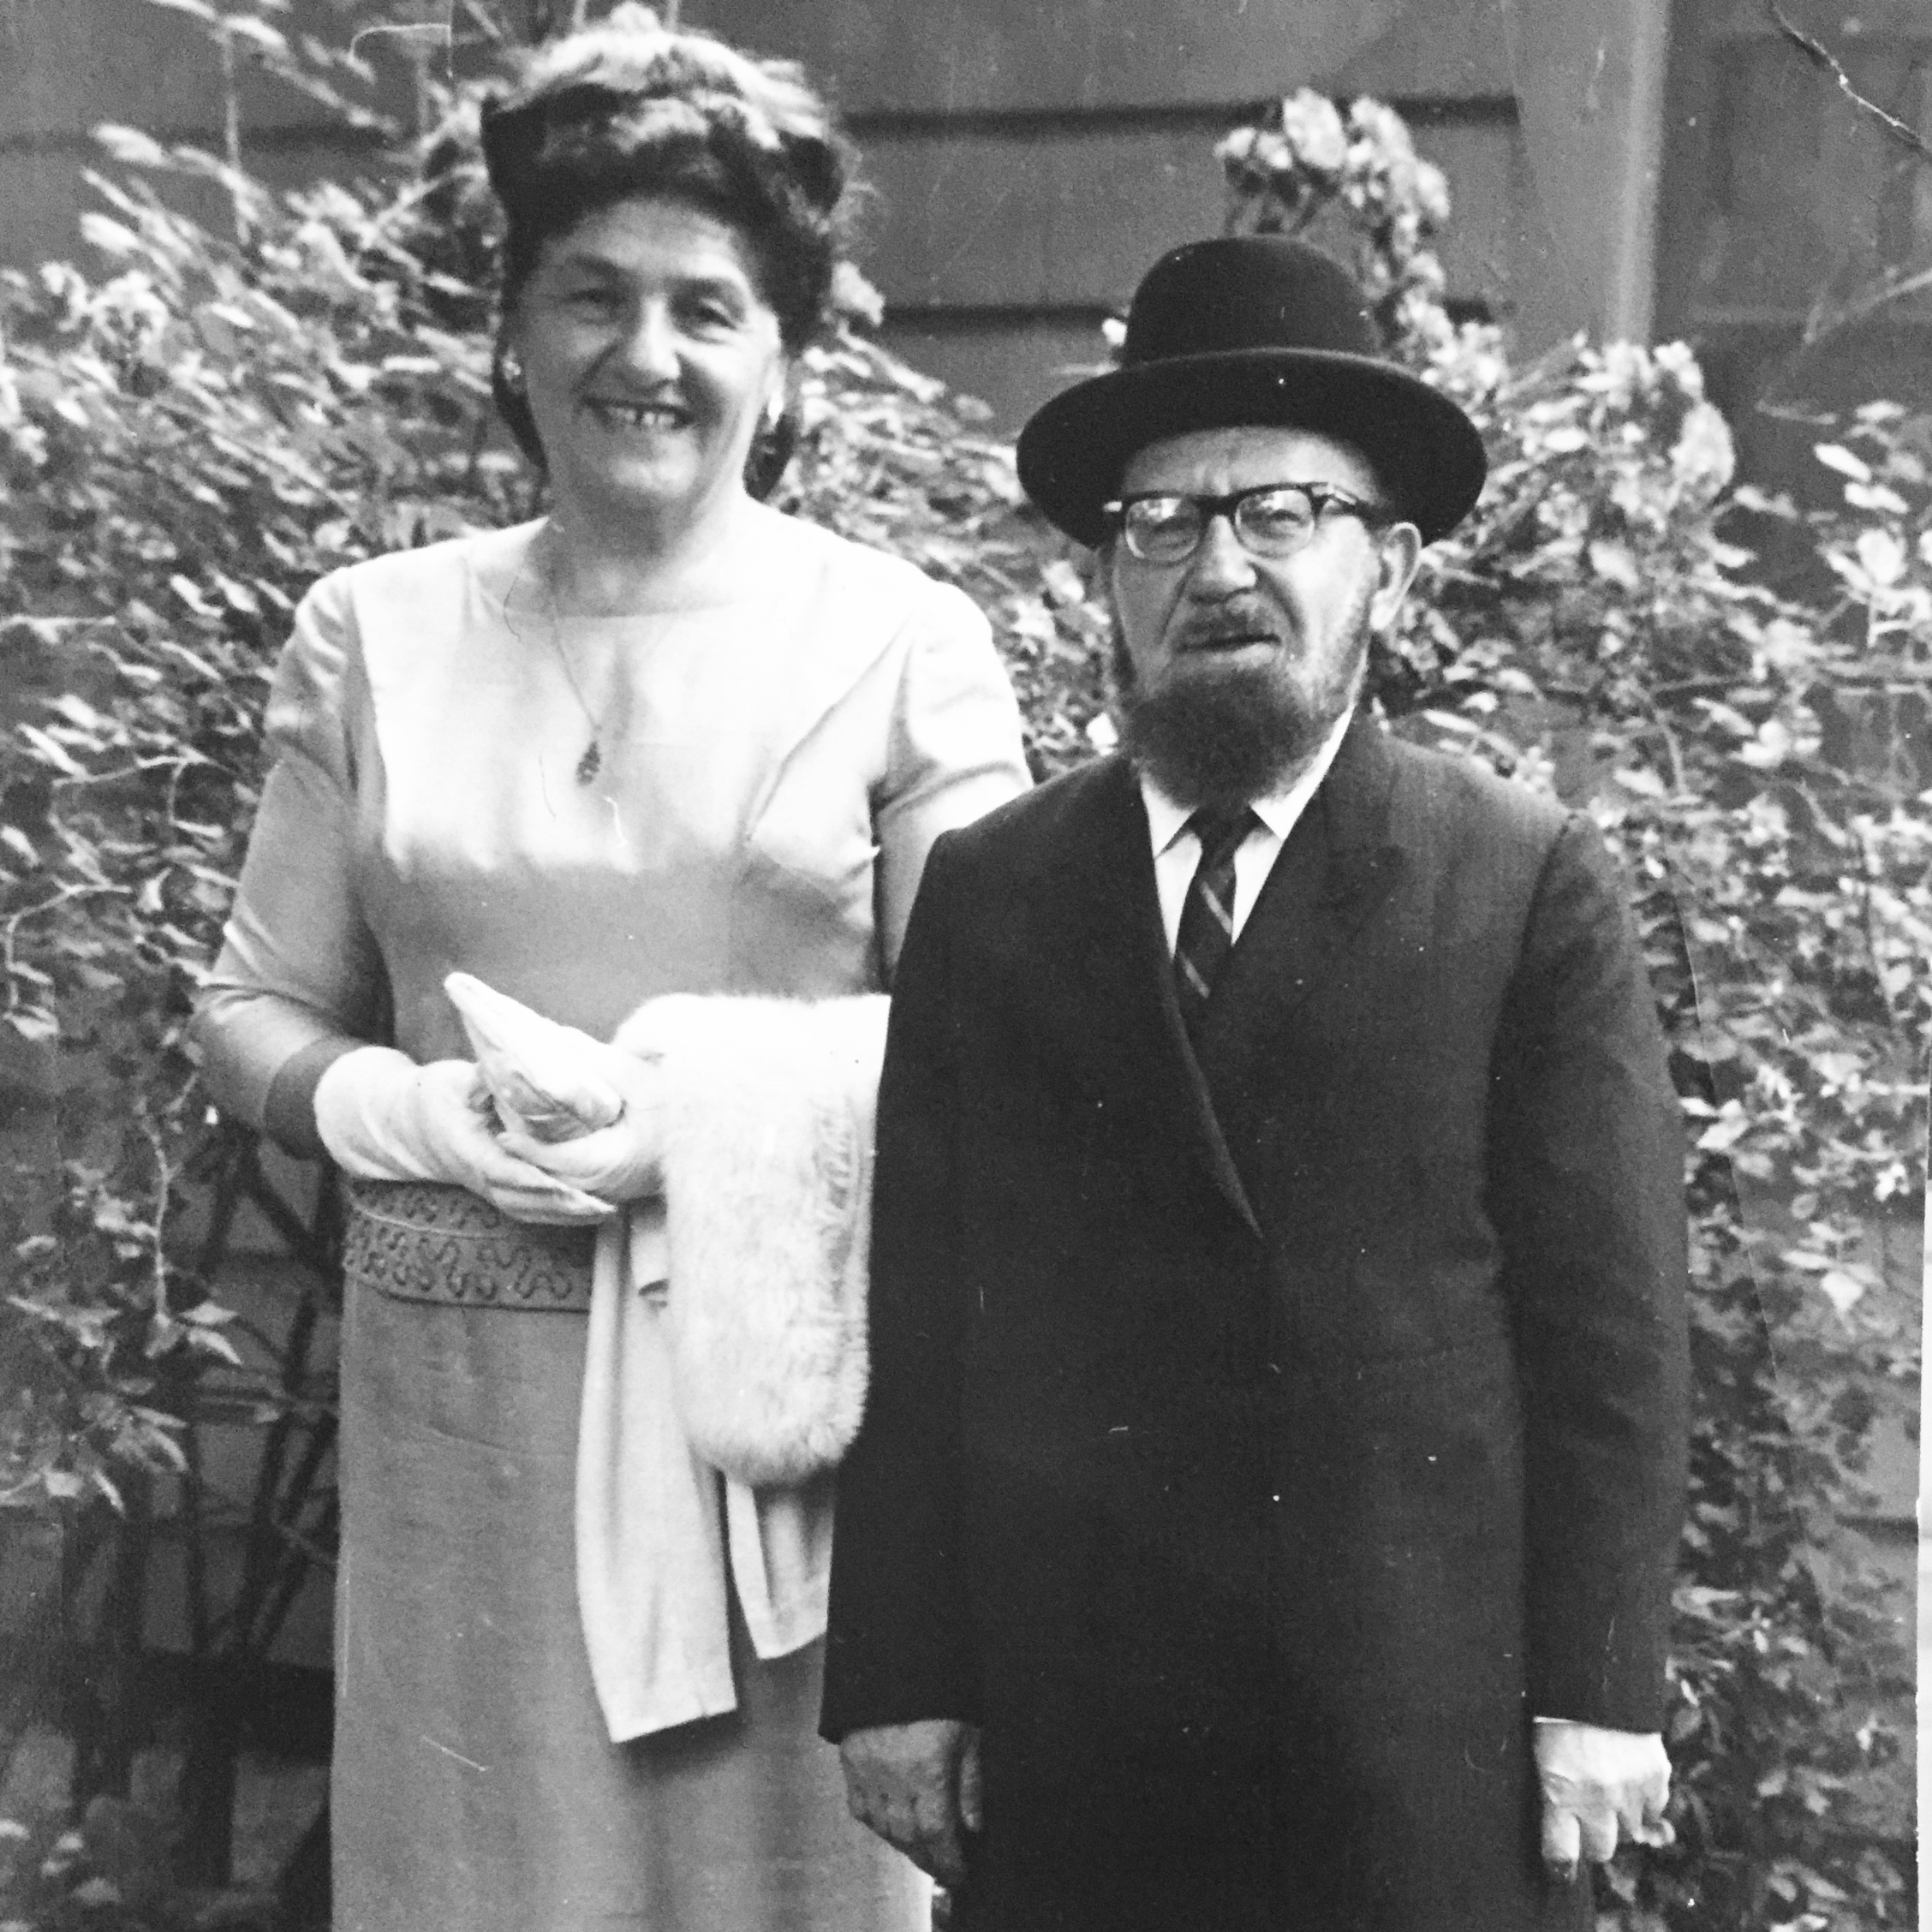 My grandparents from Poland